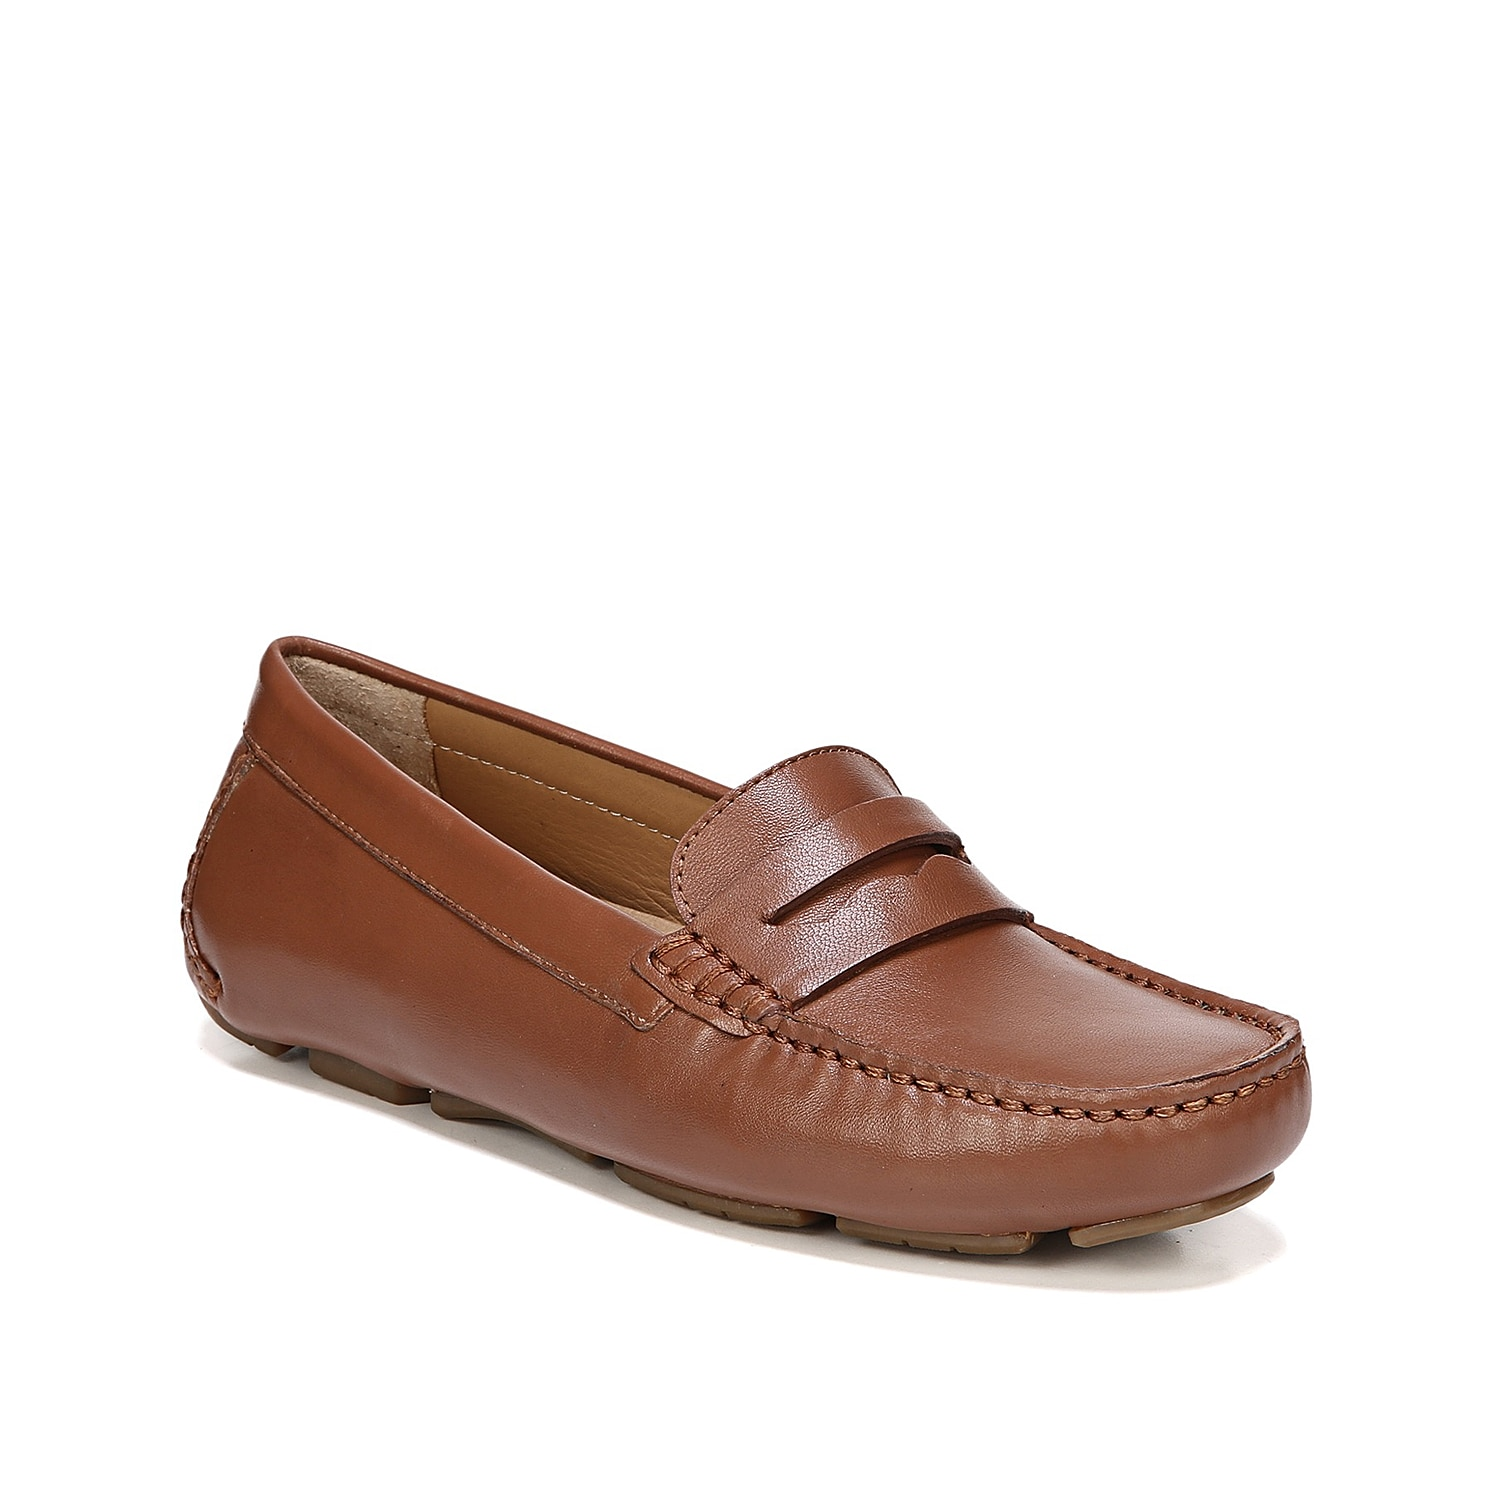 Simple lines and a classic silhouette will make the Natasha penny loafers a must-have in your wardrobe rotation. These slip-ons feature a rich leather construction and are topped off with an N5 Contour footbed for daylong support.